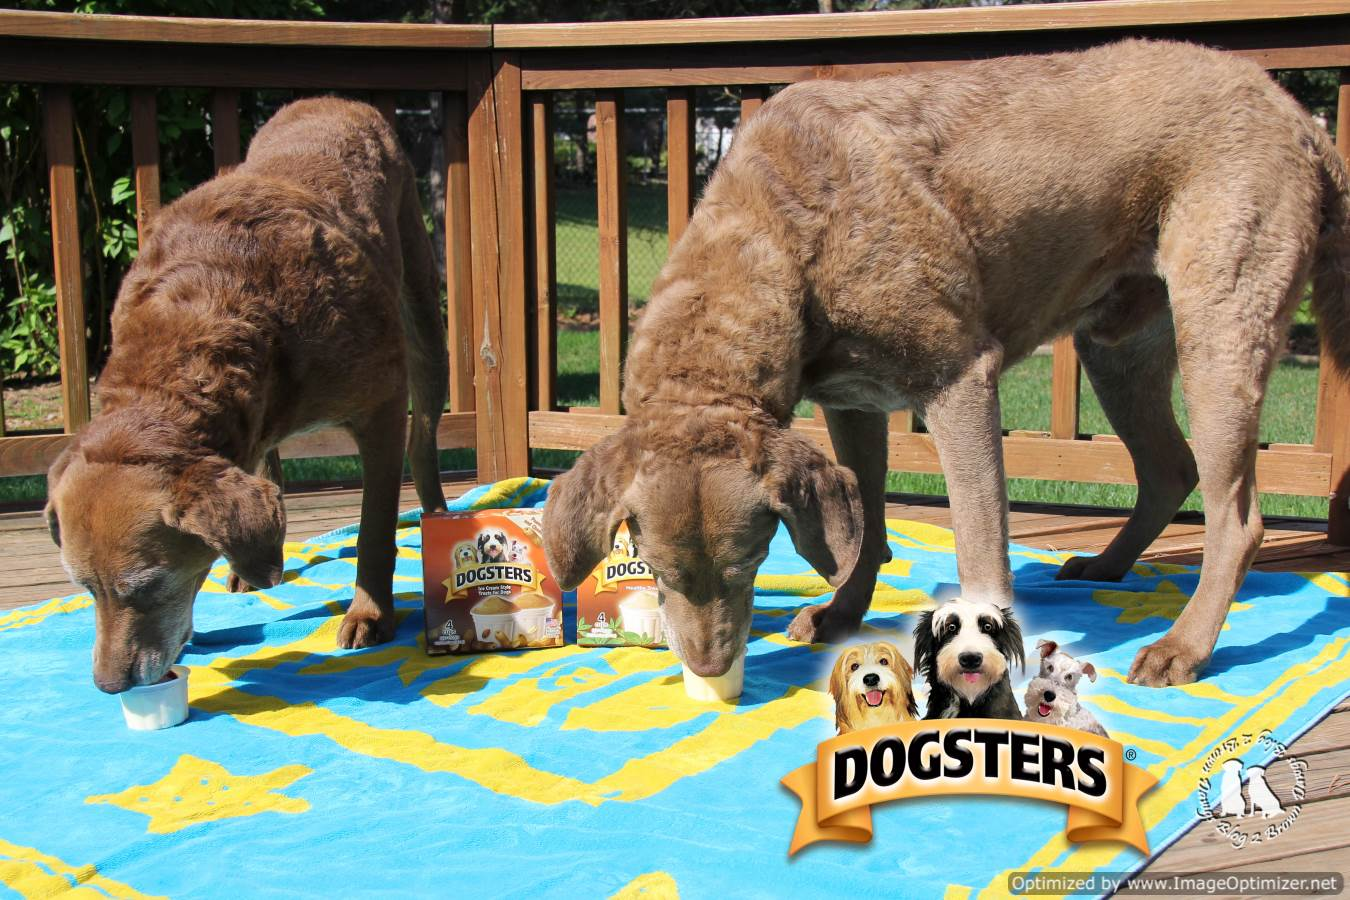 Dogsters ice cream coupons : Cablevision deals for existing ...